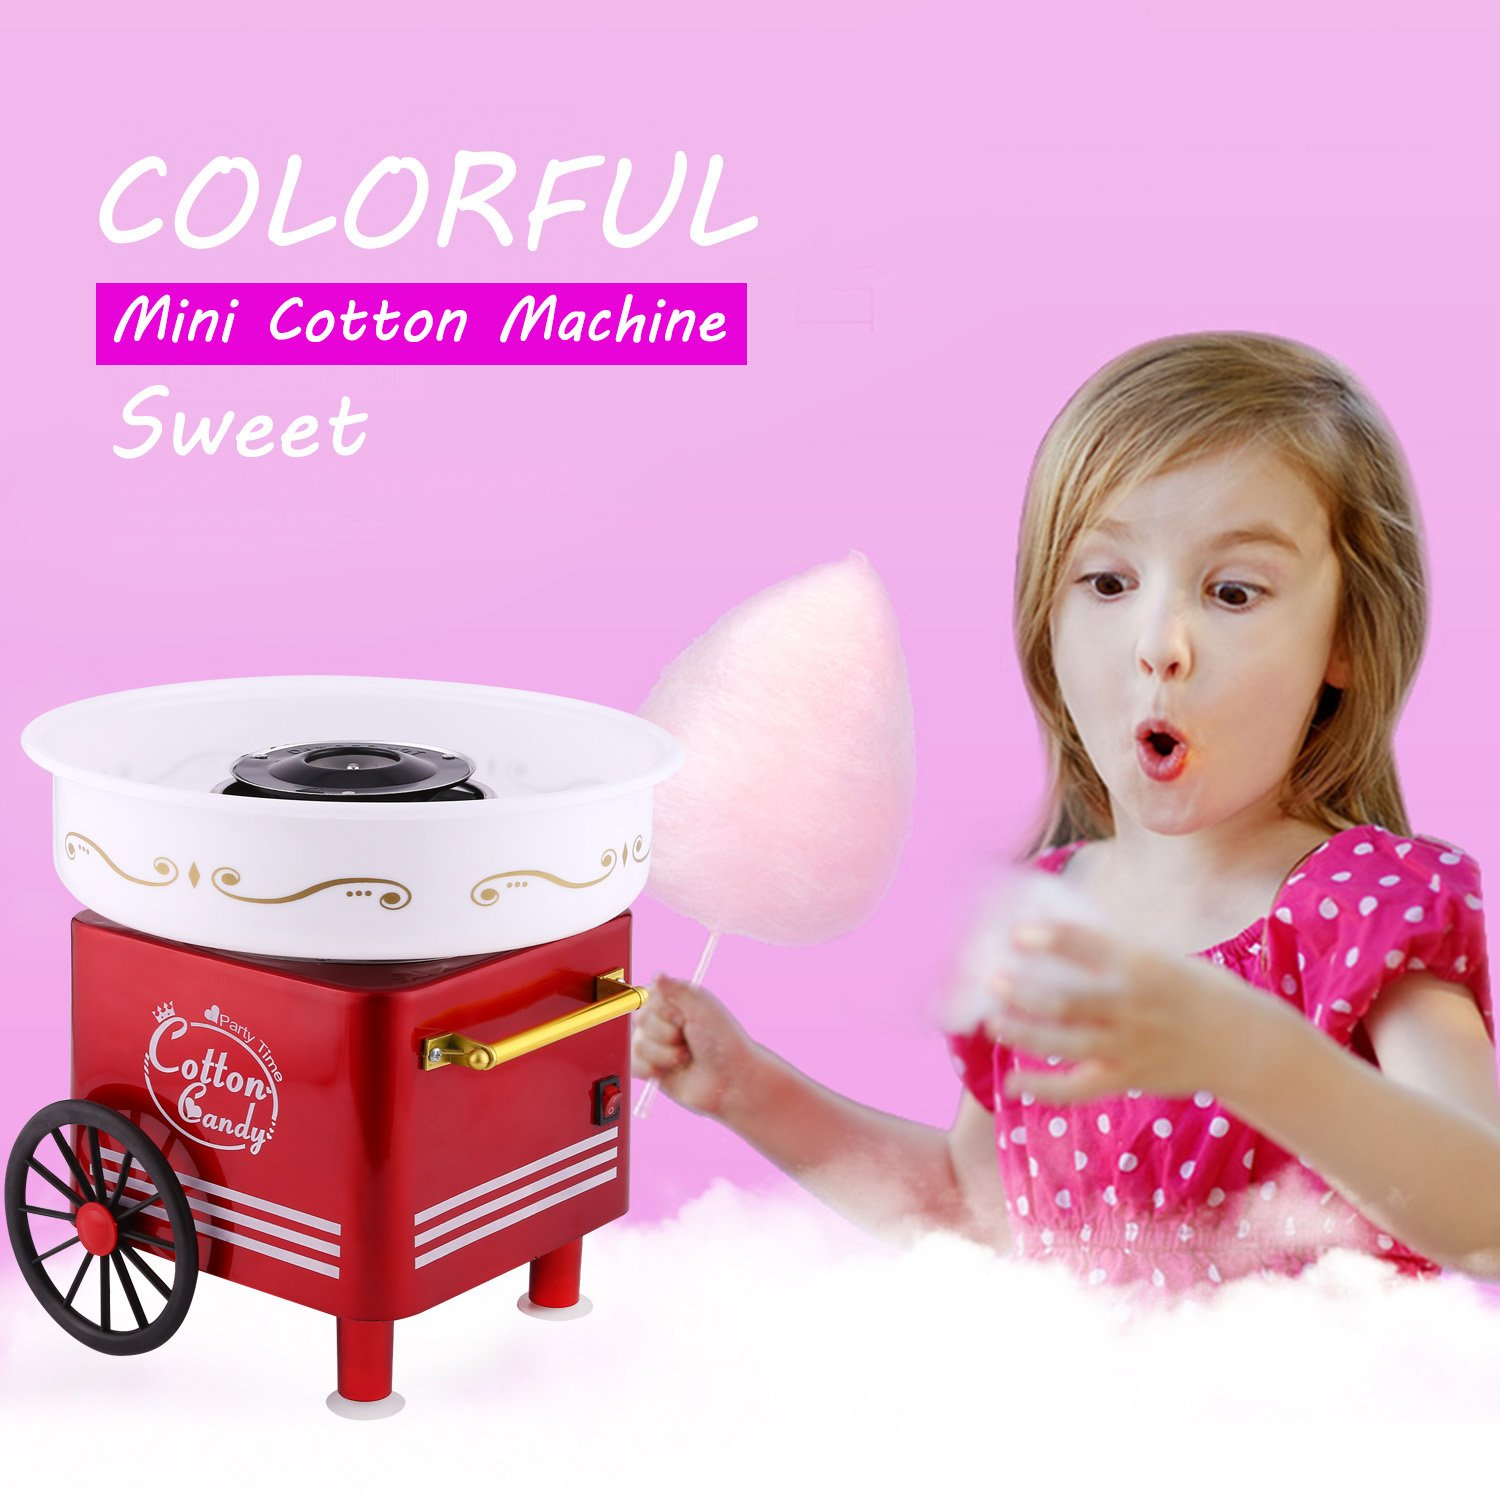 Vintage Sugar, SugarFree, or Hard Candy Machine Cotton Candy Floss Maker Birthday Party Supplies (Red) by Ferty (Image #3)